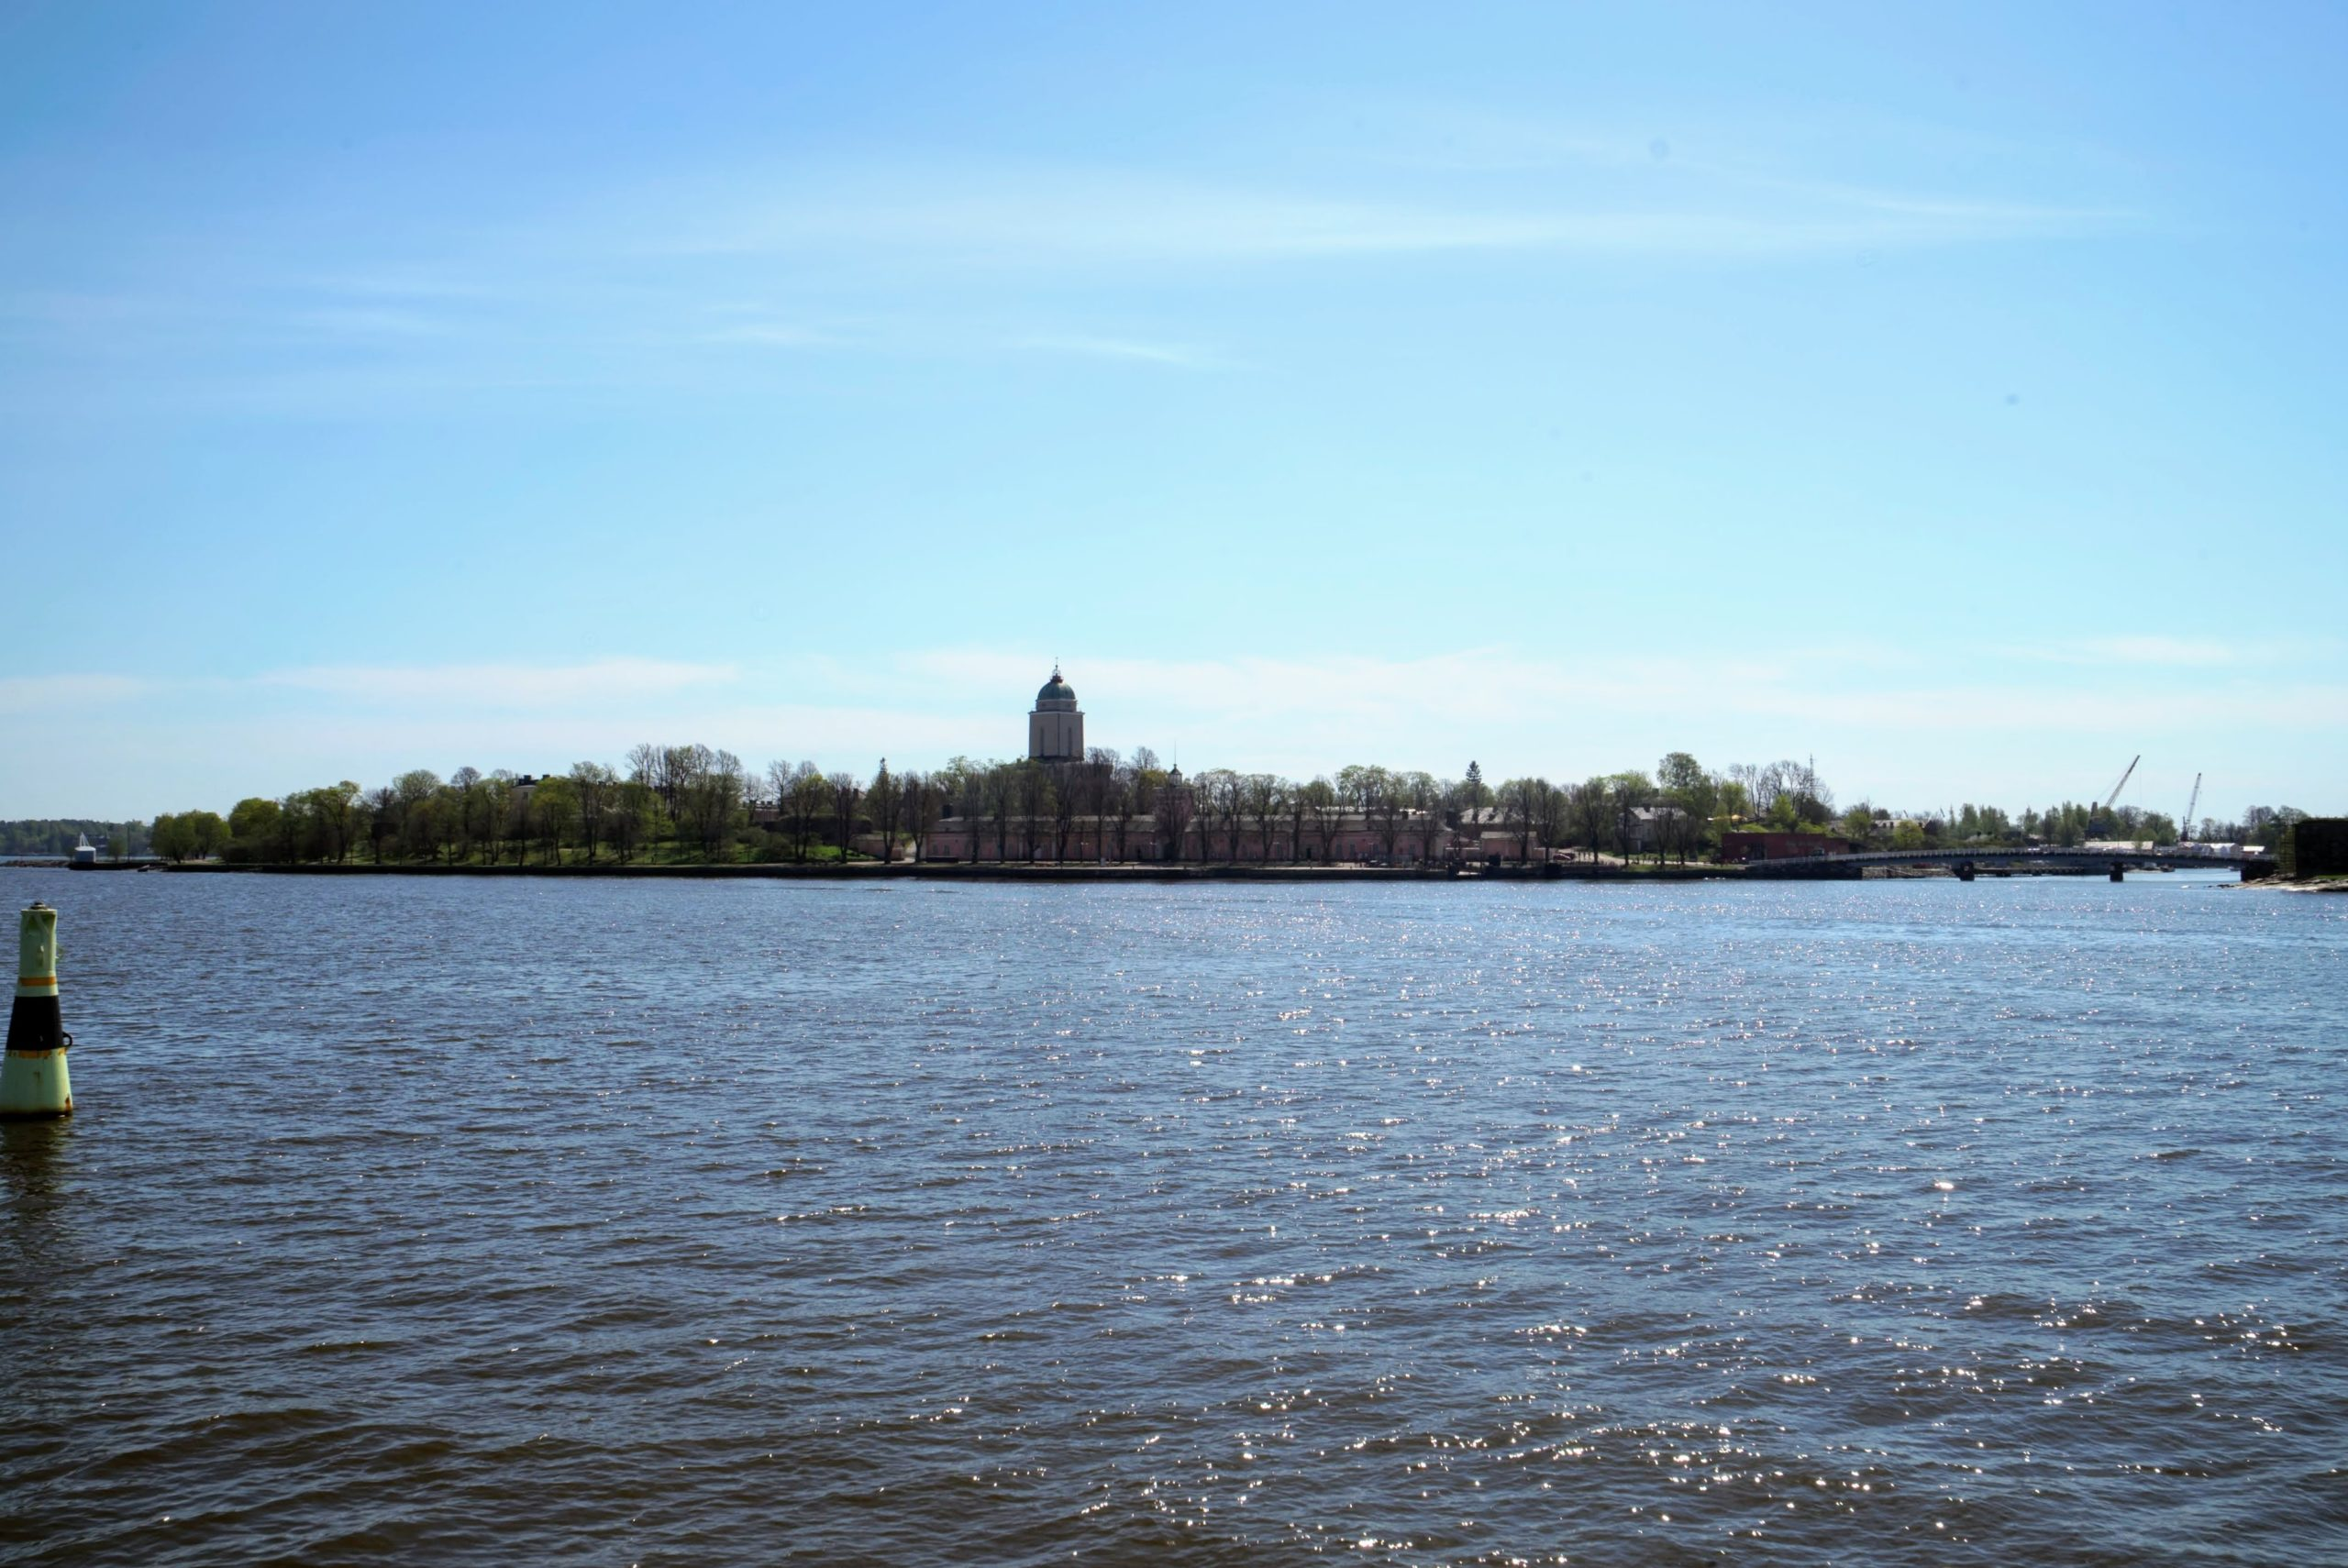 Finland Summer Travel Guide: Five Things to Do in Helsinki 3